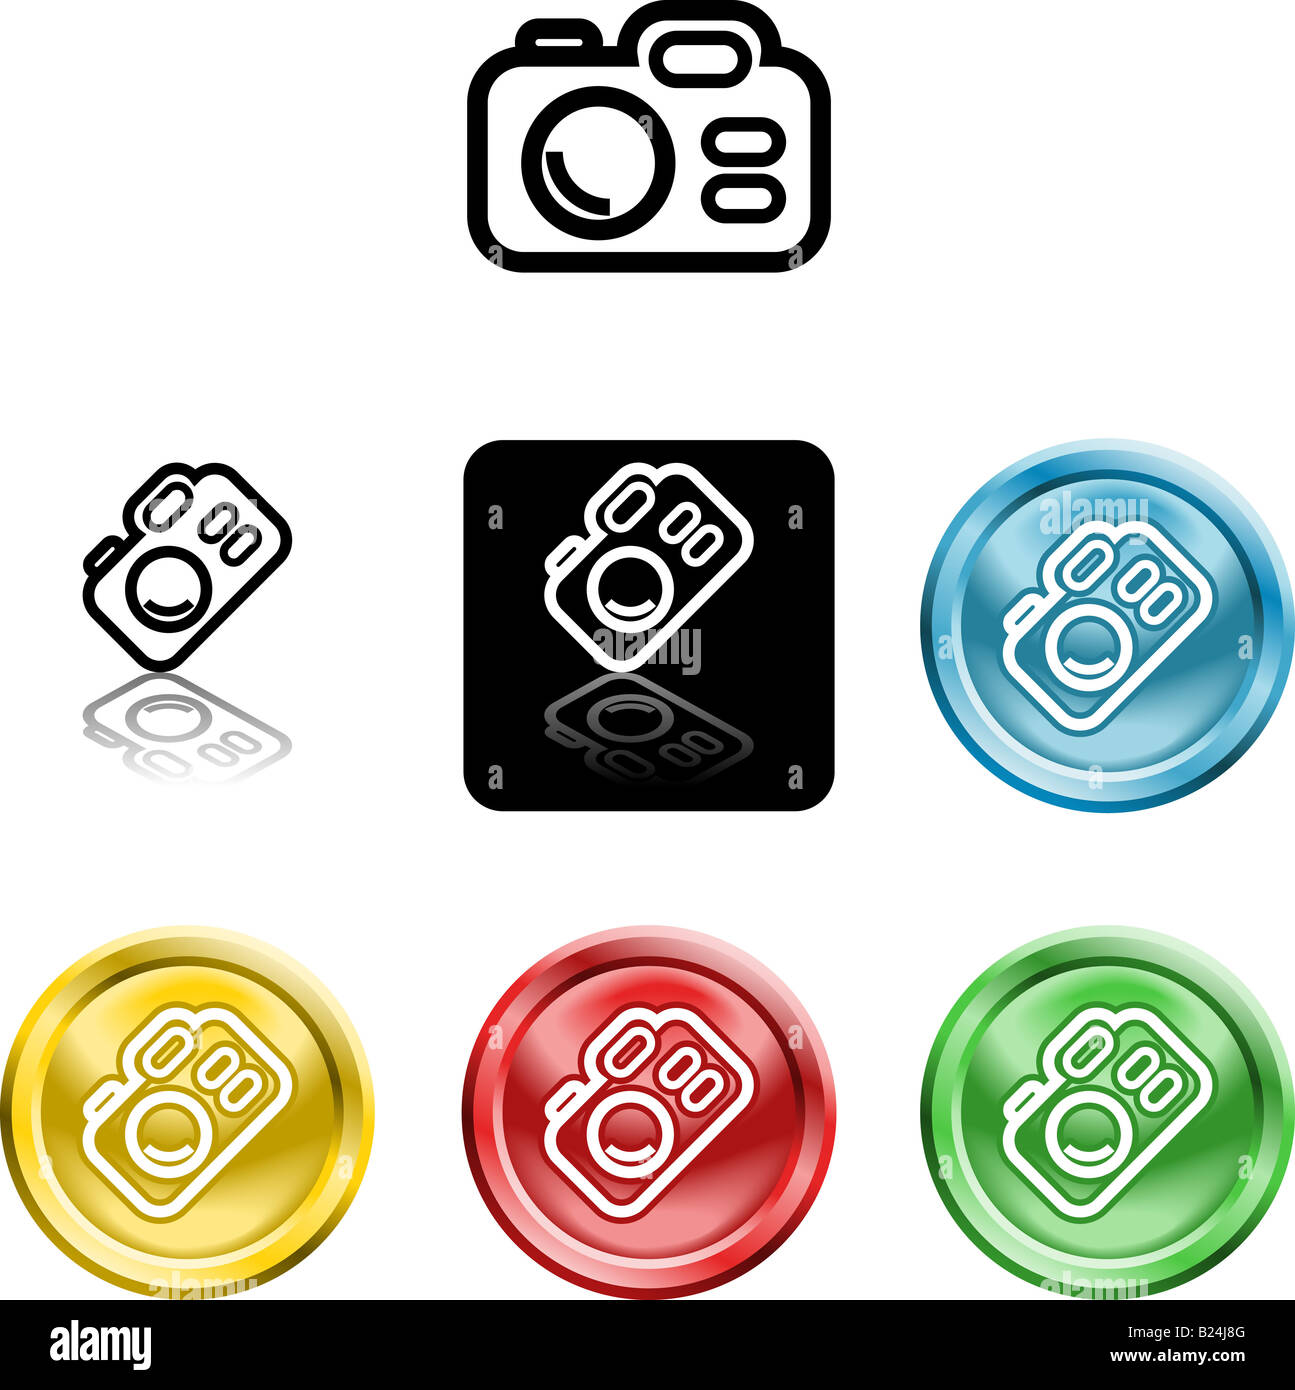 Several versions of an icon symbol of a stylised camera - Stock Image